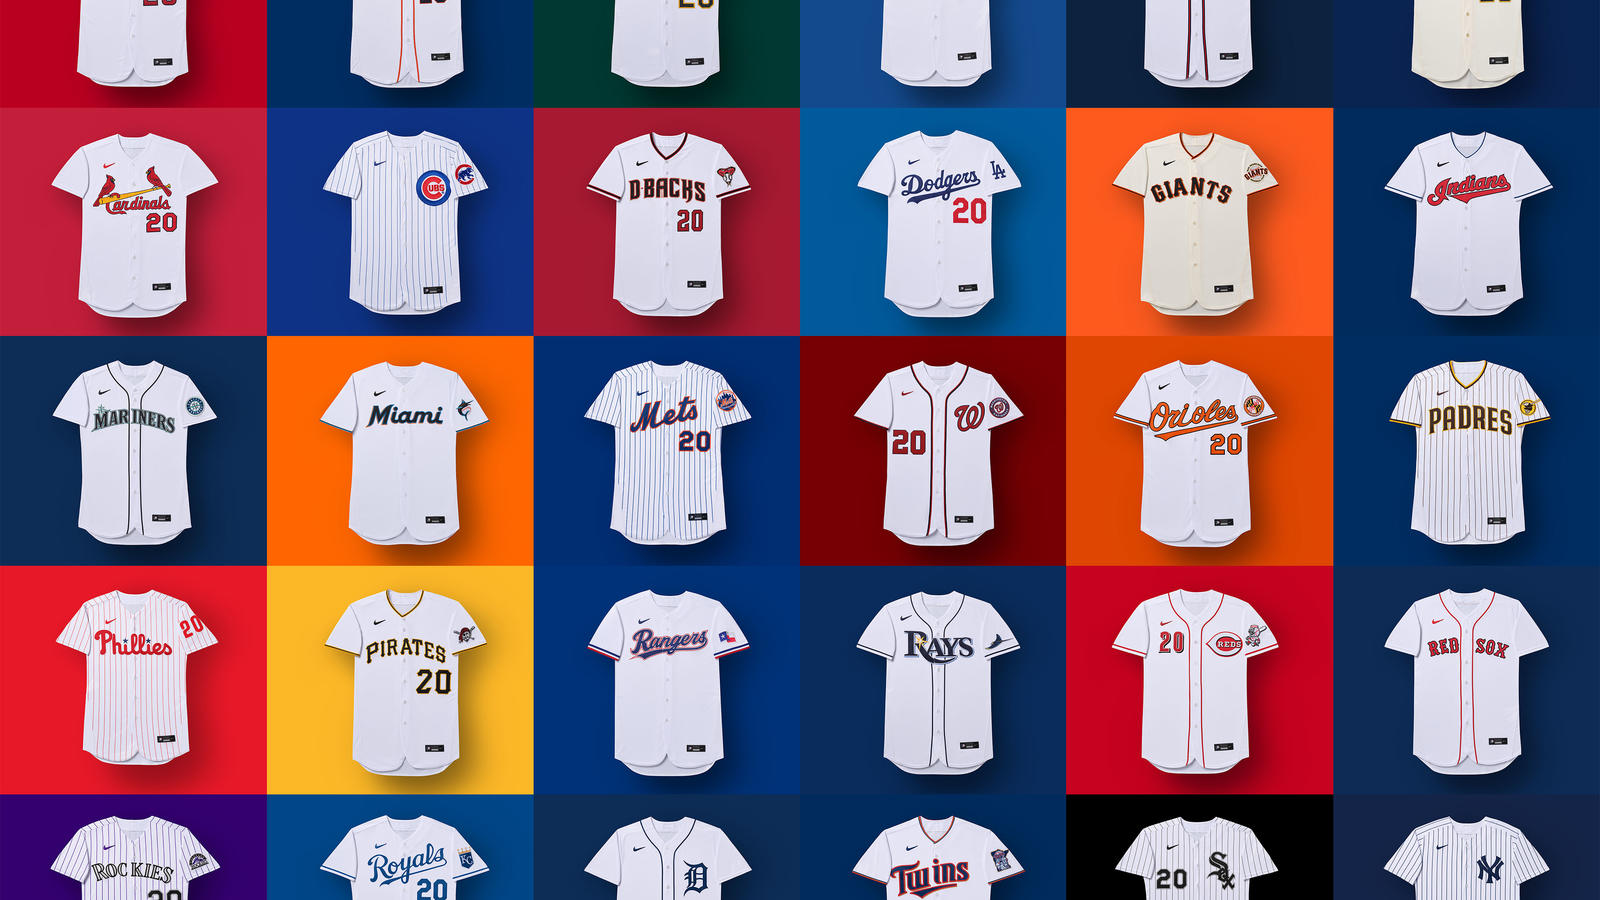 nike-x-major-league-baseball-uniforms-2020-official-images